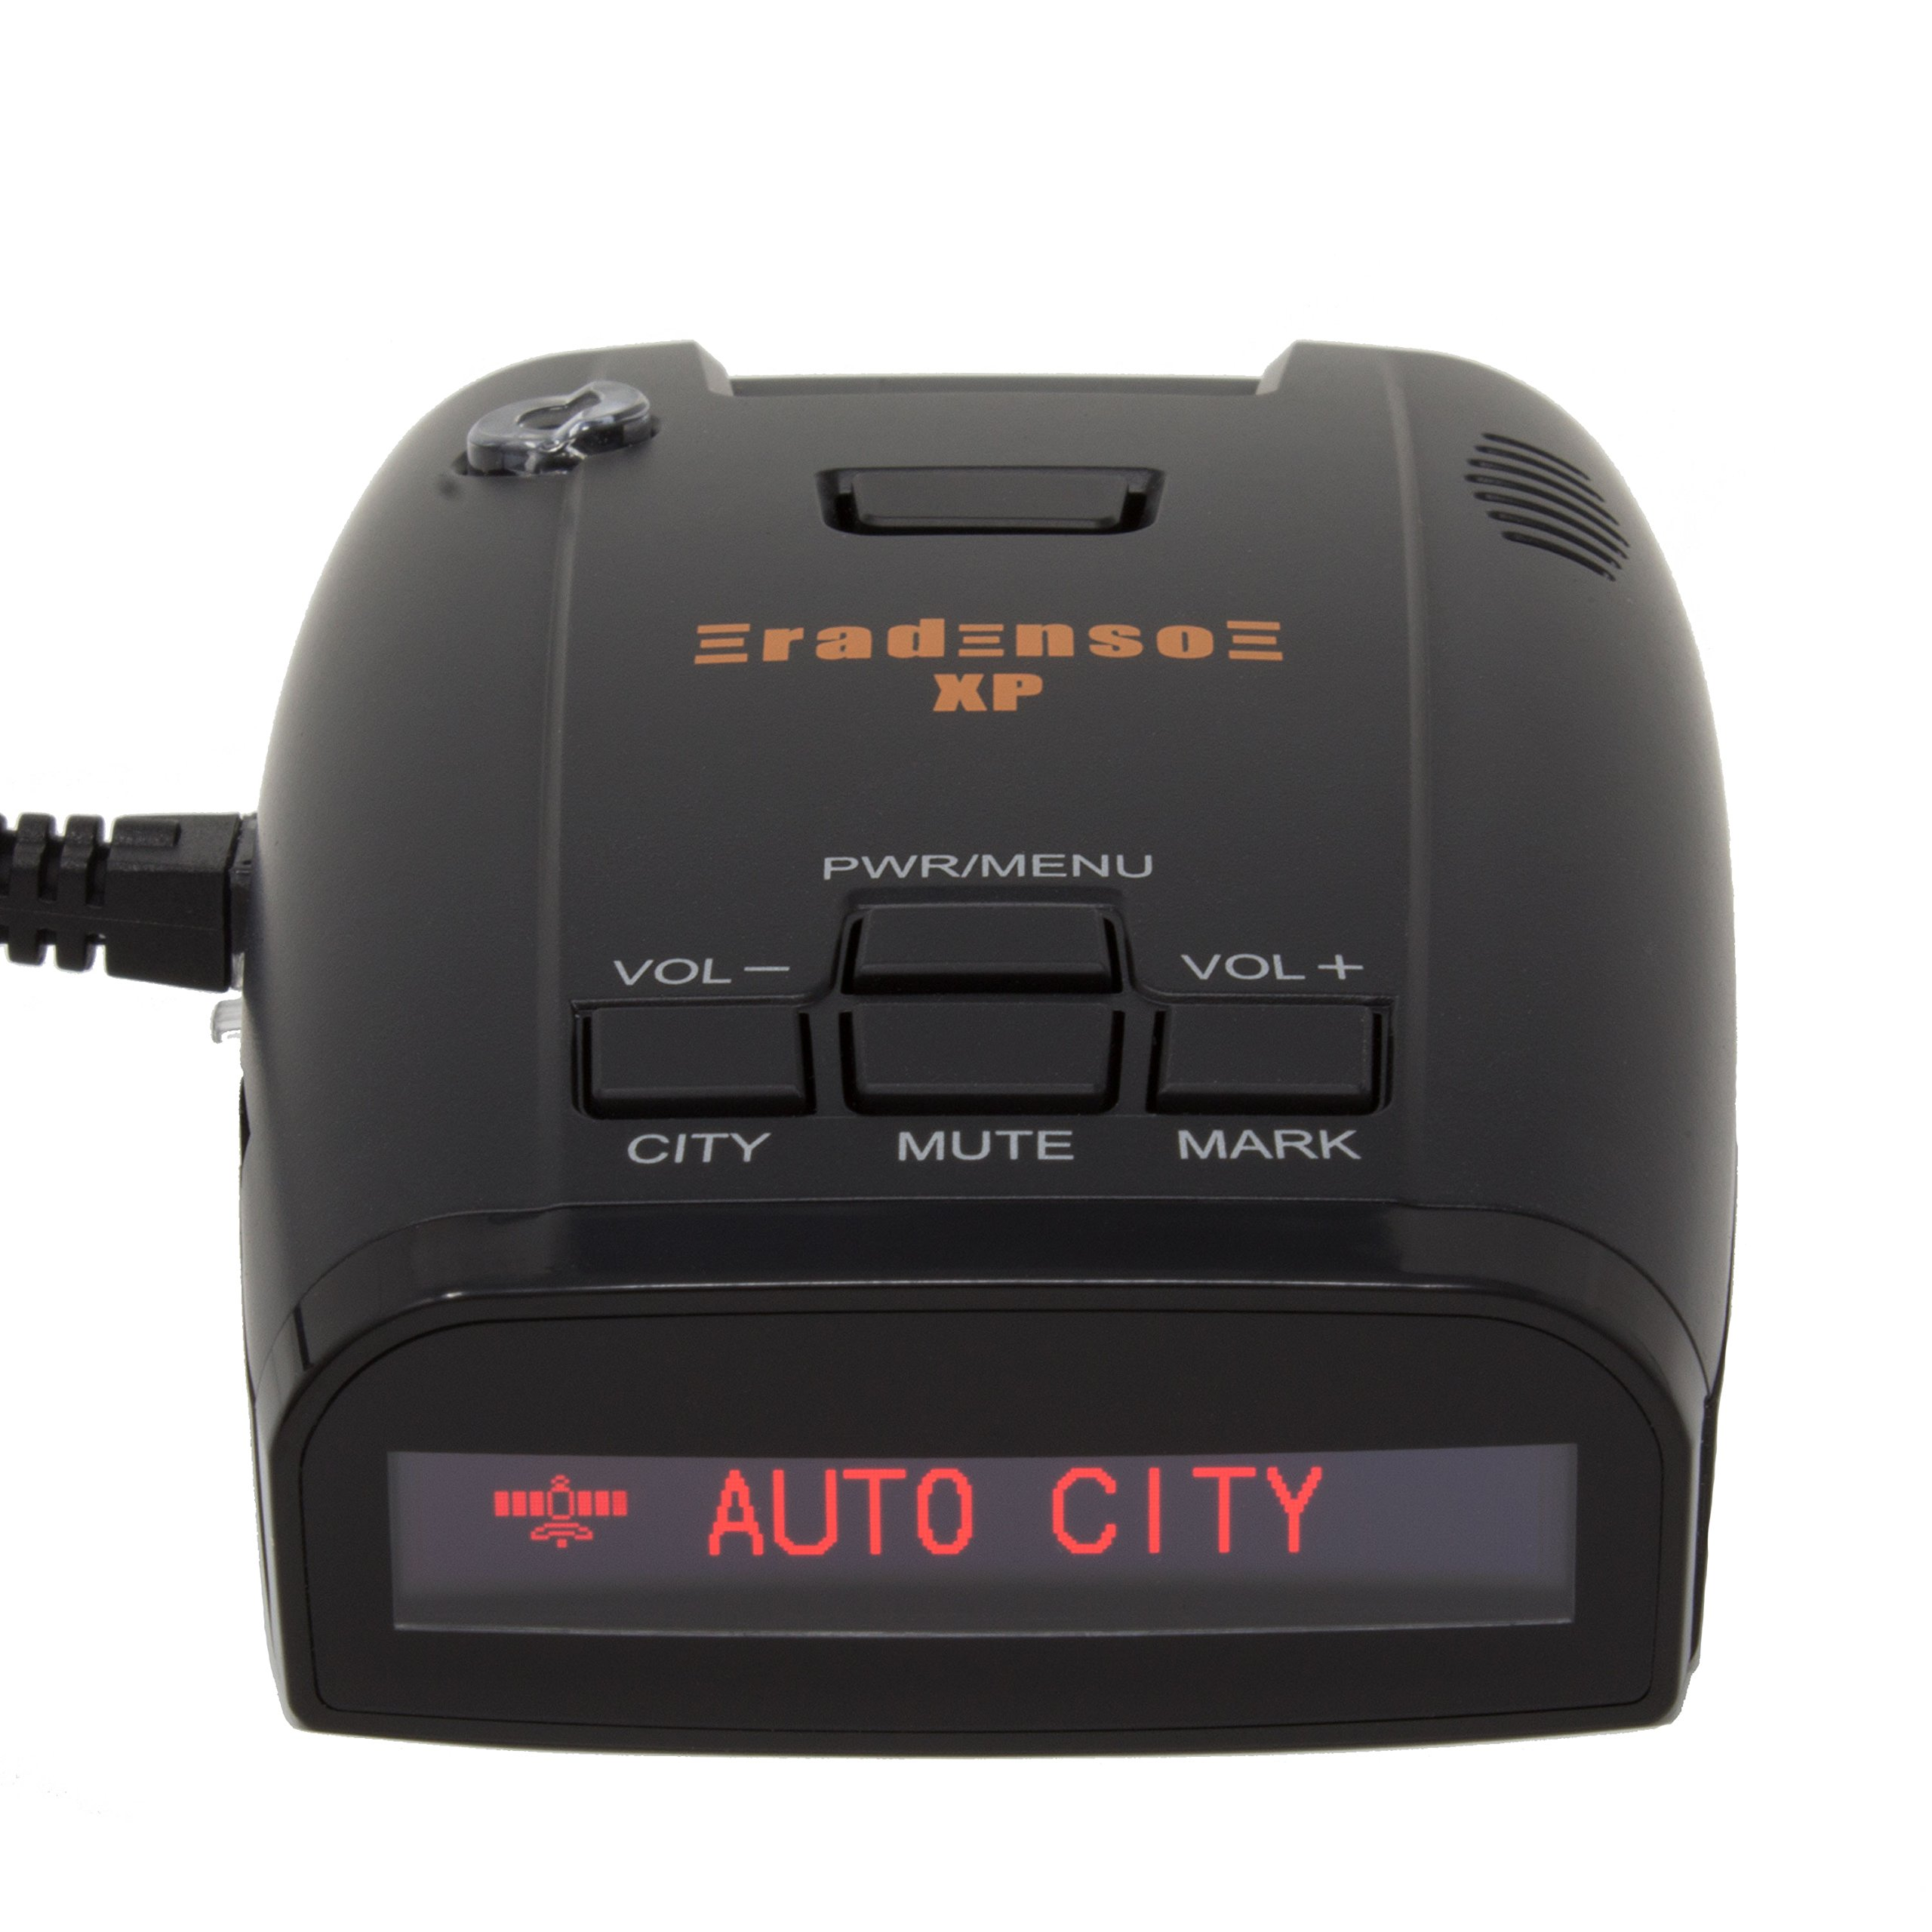 Radenso XP Radar & Laser Detector with GPS Lockout and Red Light / Speed Camera Voice Alerts